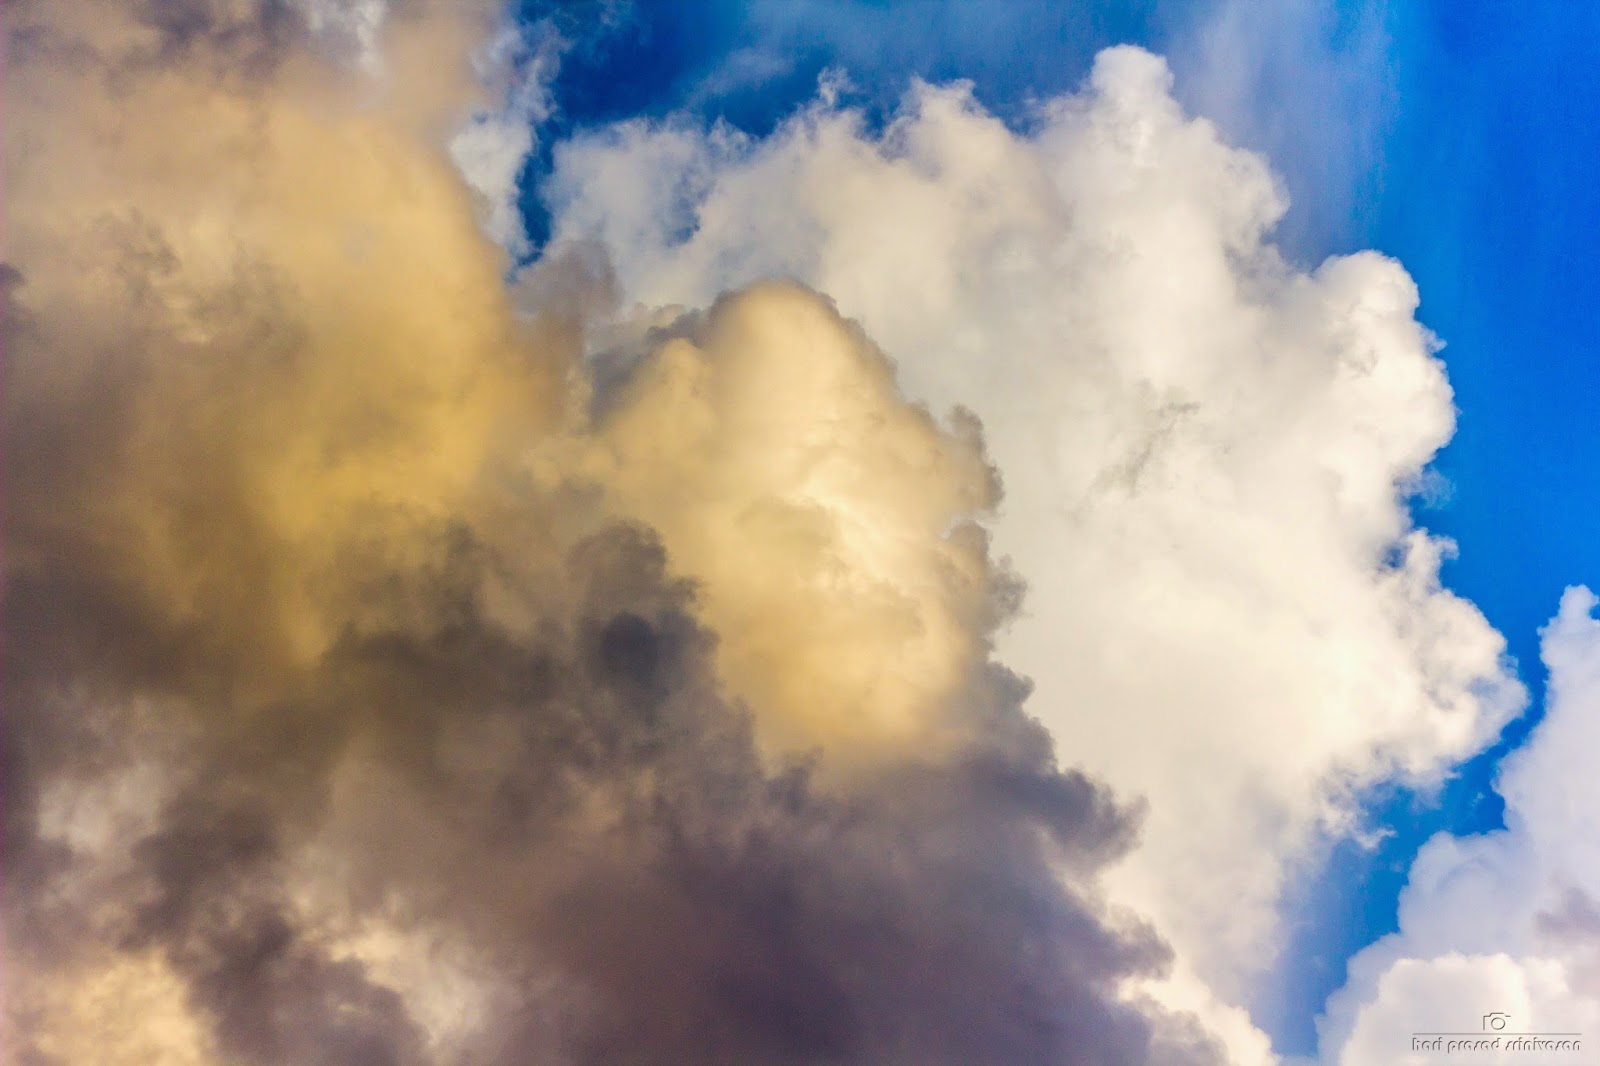 Cloud formation with a high dynamic range